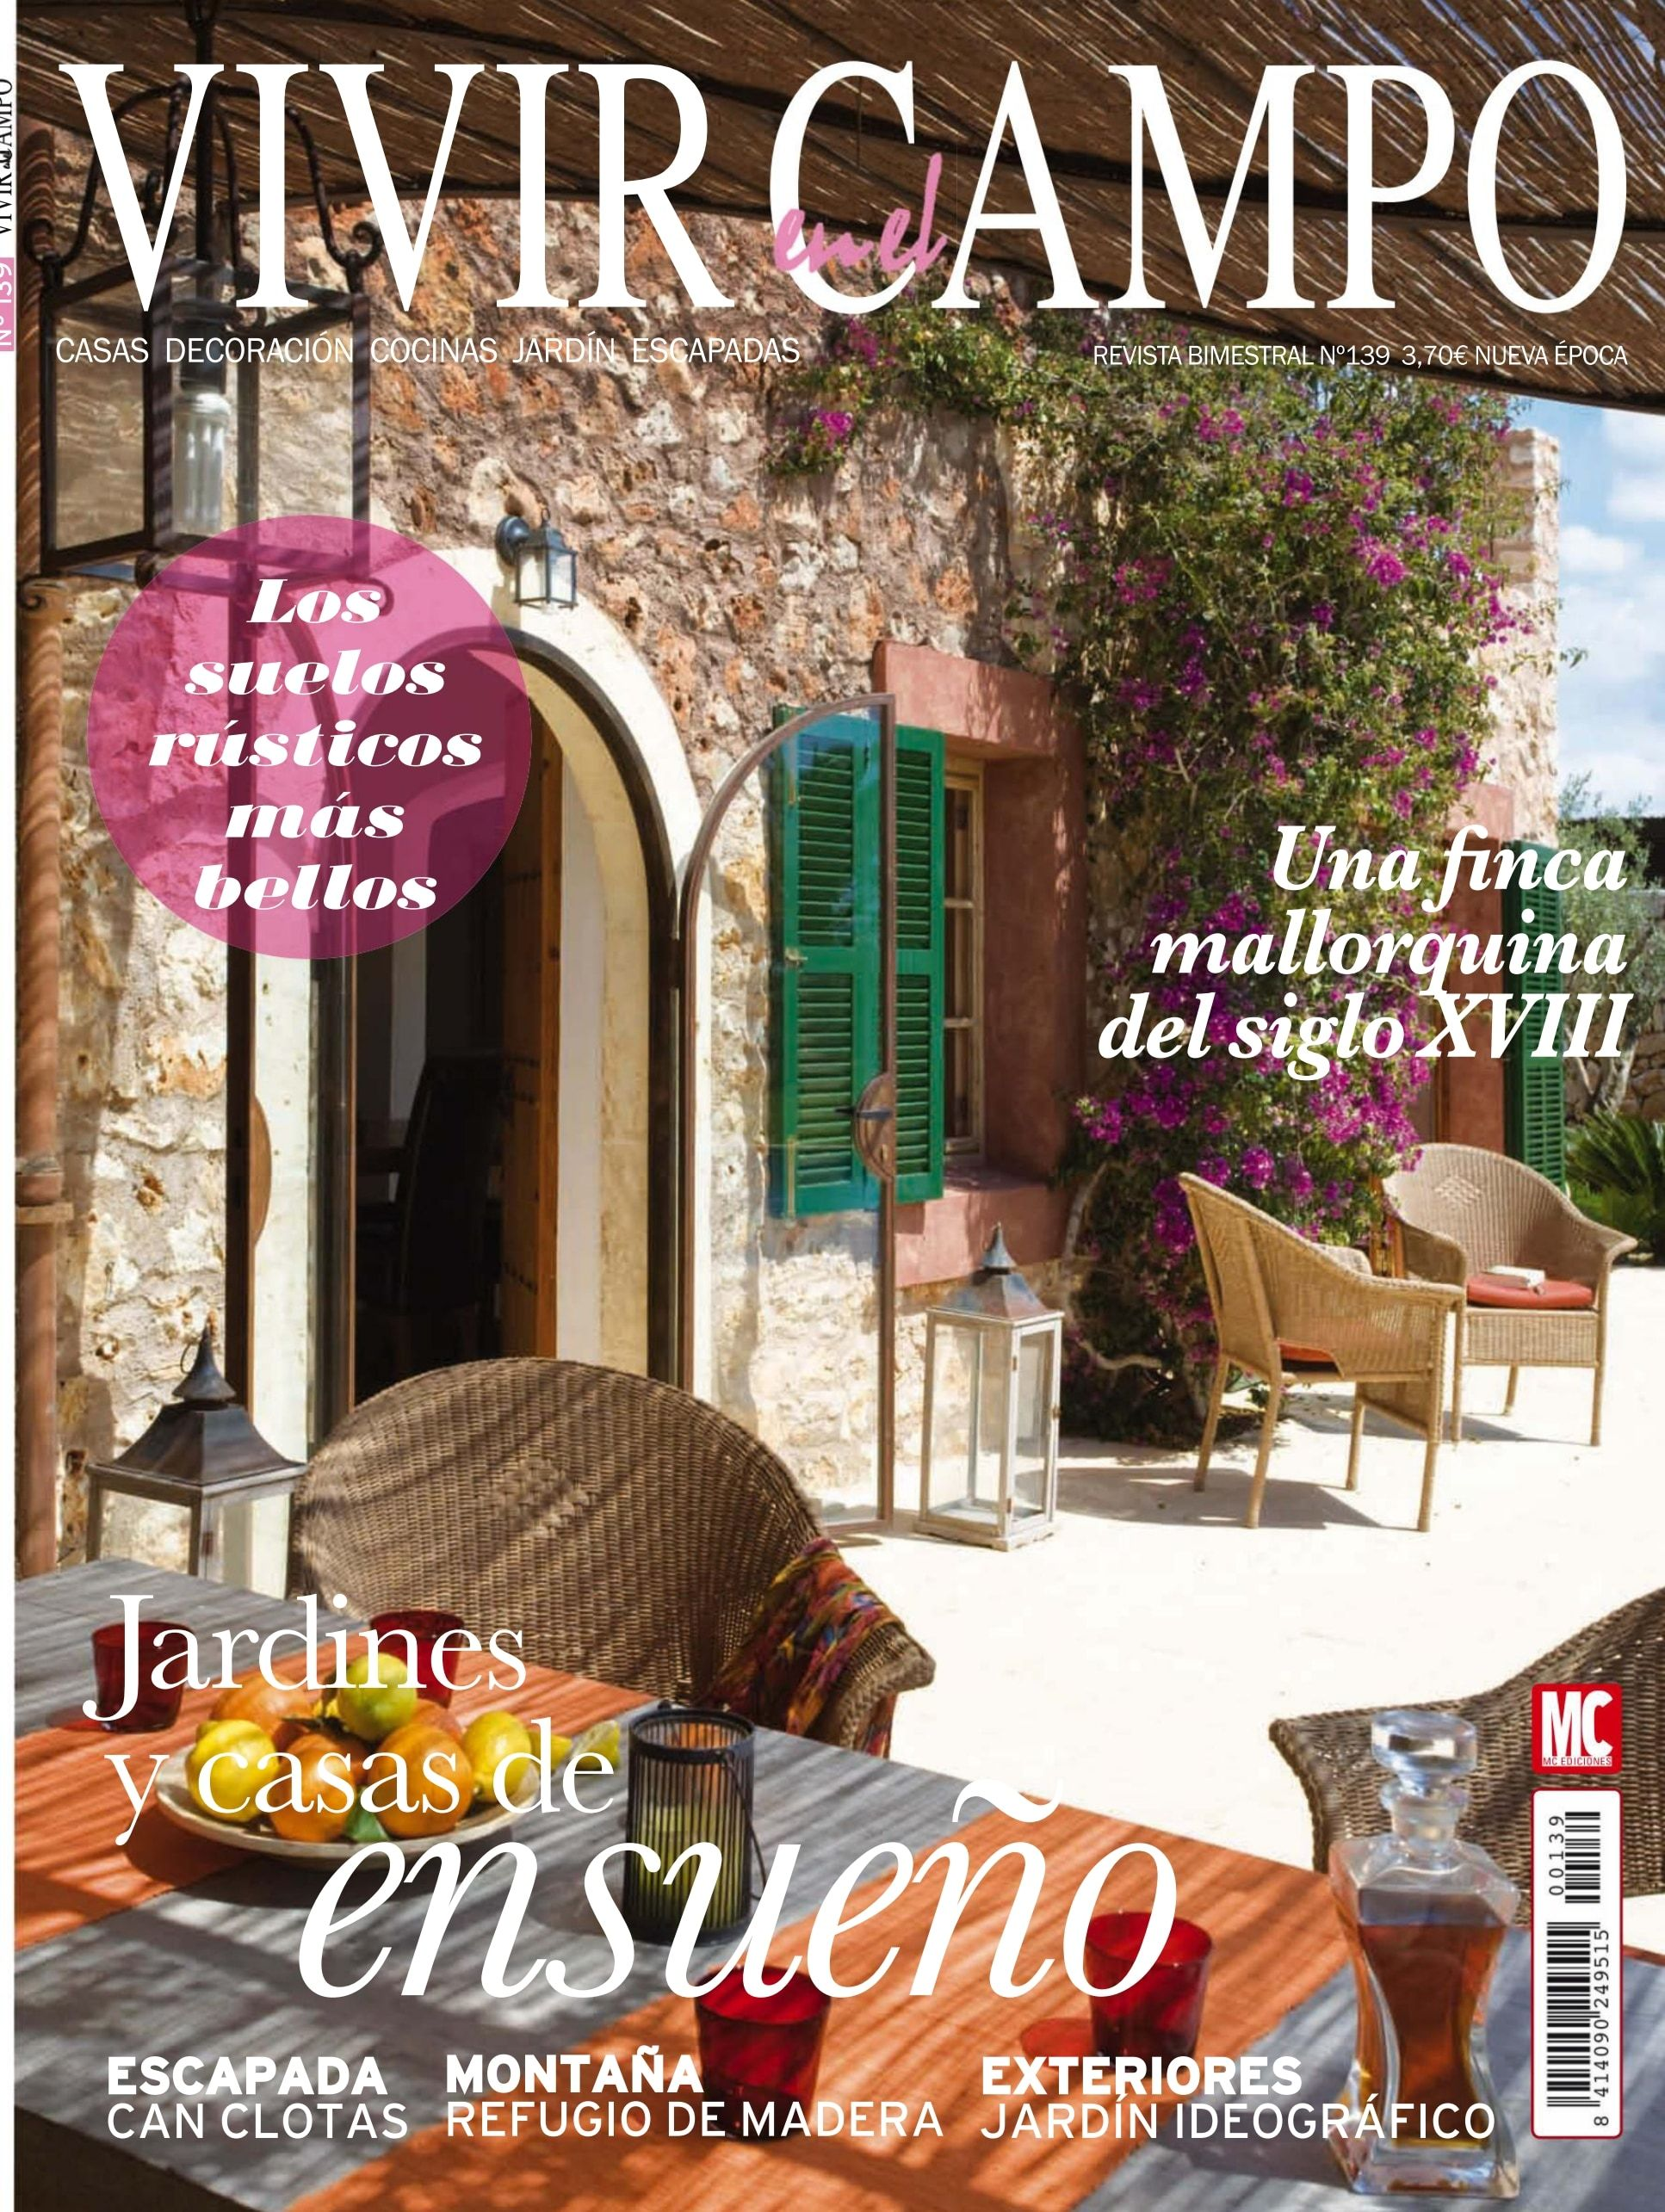 M s de 25 ideas incre bles sobre revista casa y campo en for Casa jardin revista